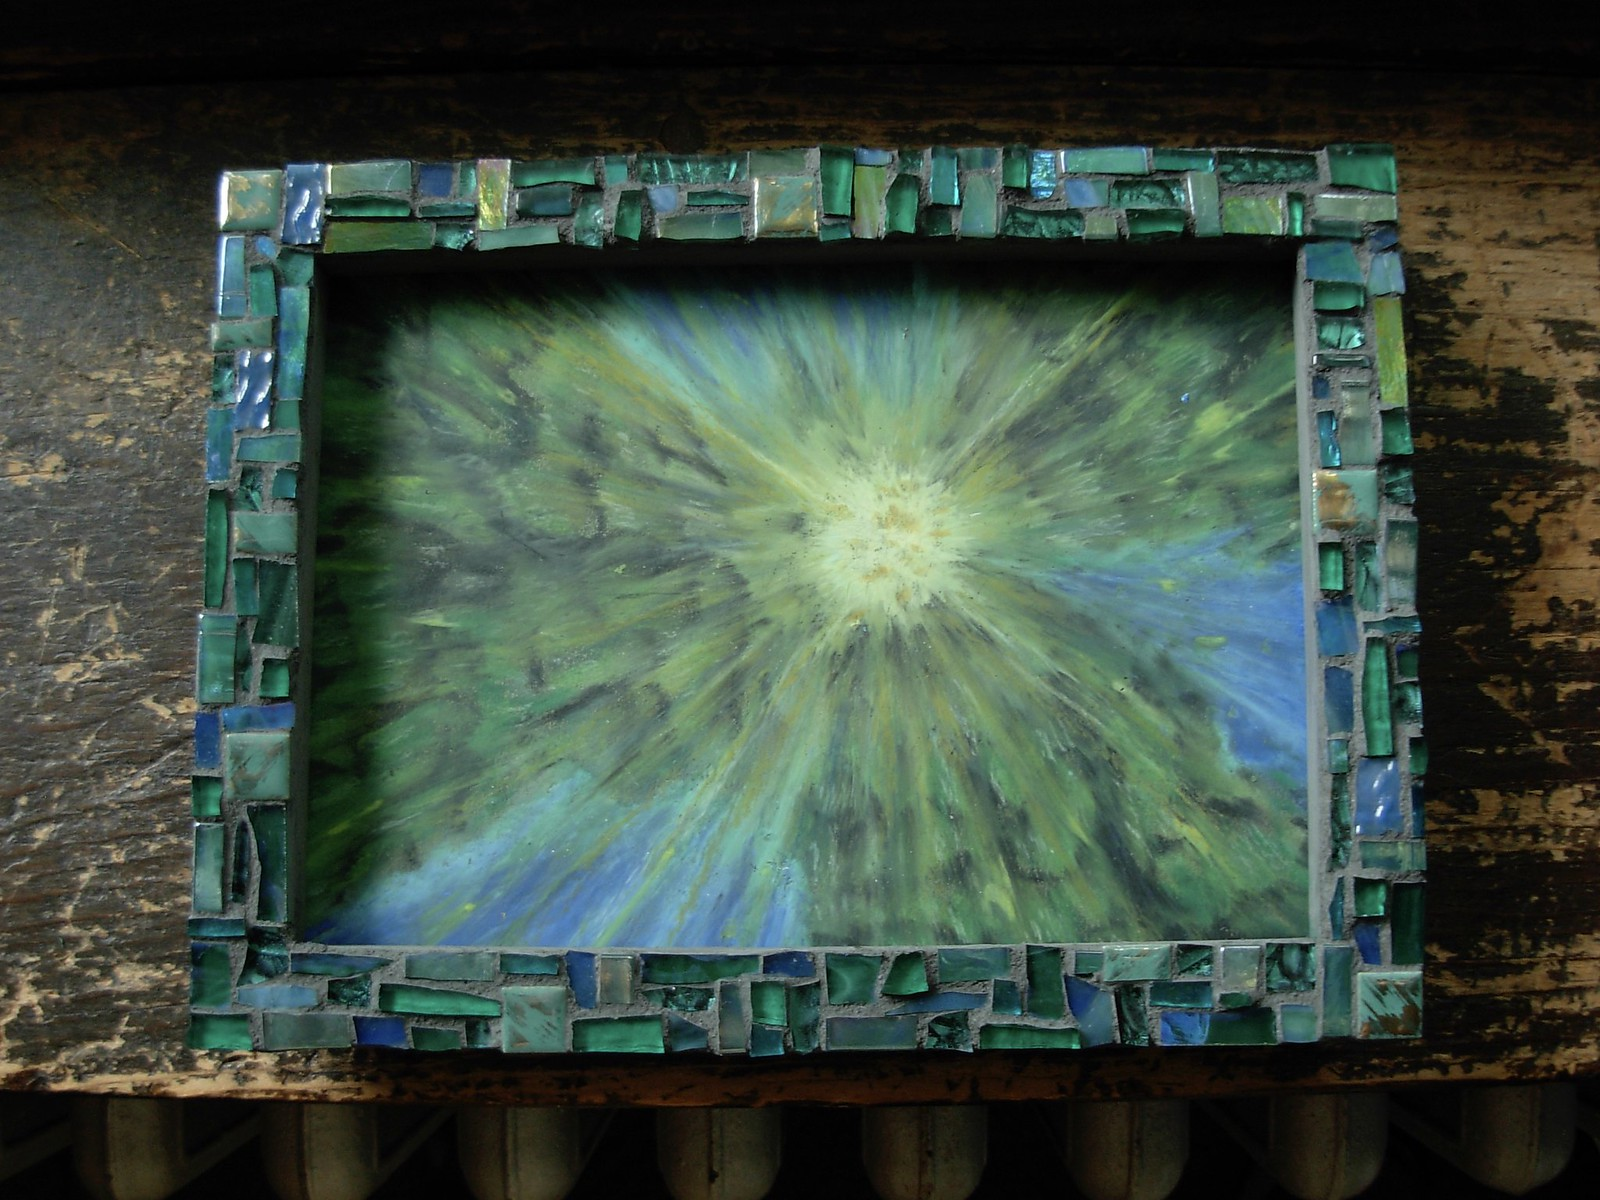 Sun Trees: Oil Pastel by Suzanne Halstead, Mosaic Frame by Margaret Almon